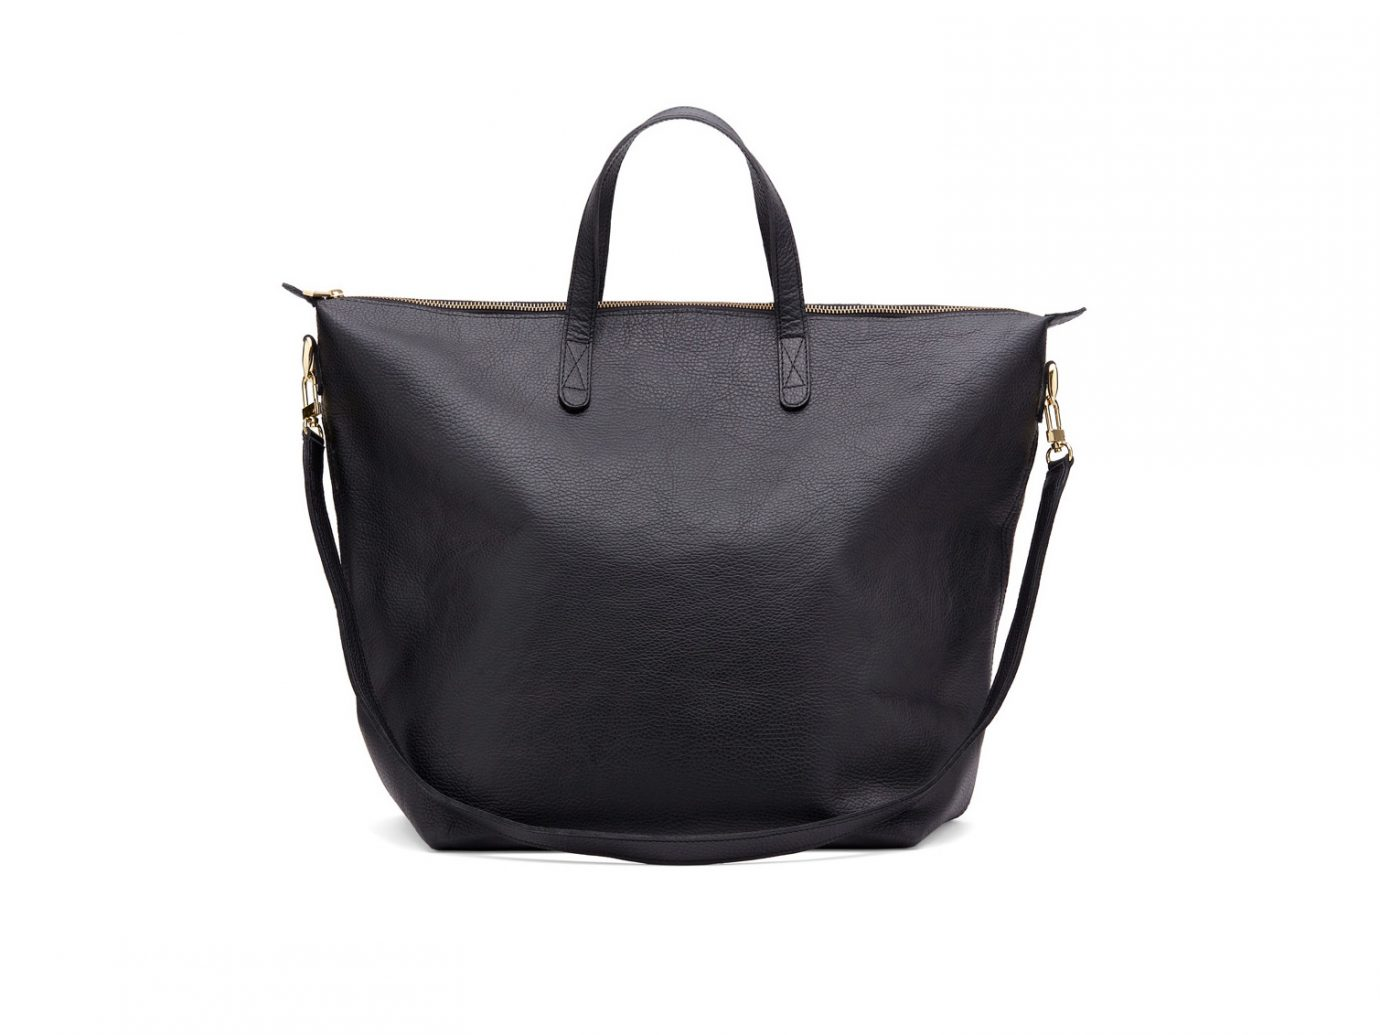 Cuyana Oversized Carryall Tote